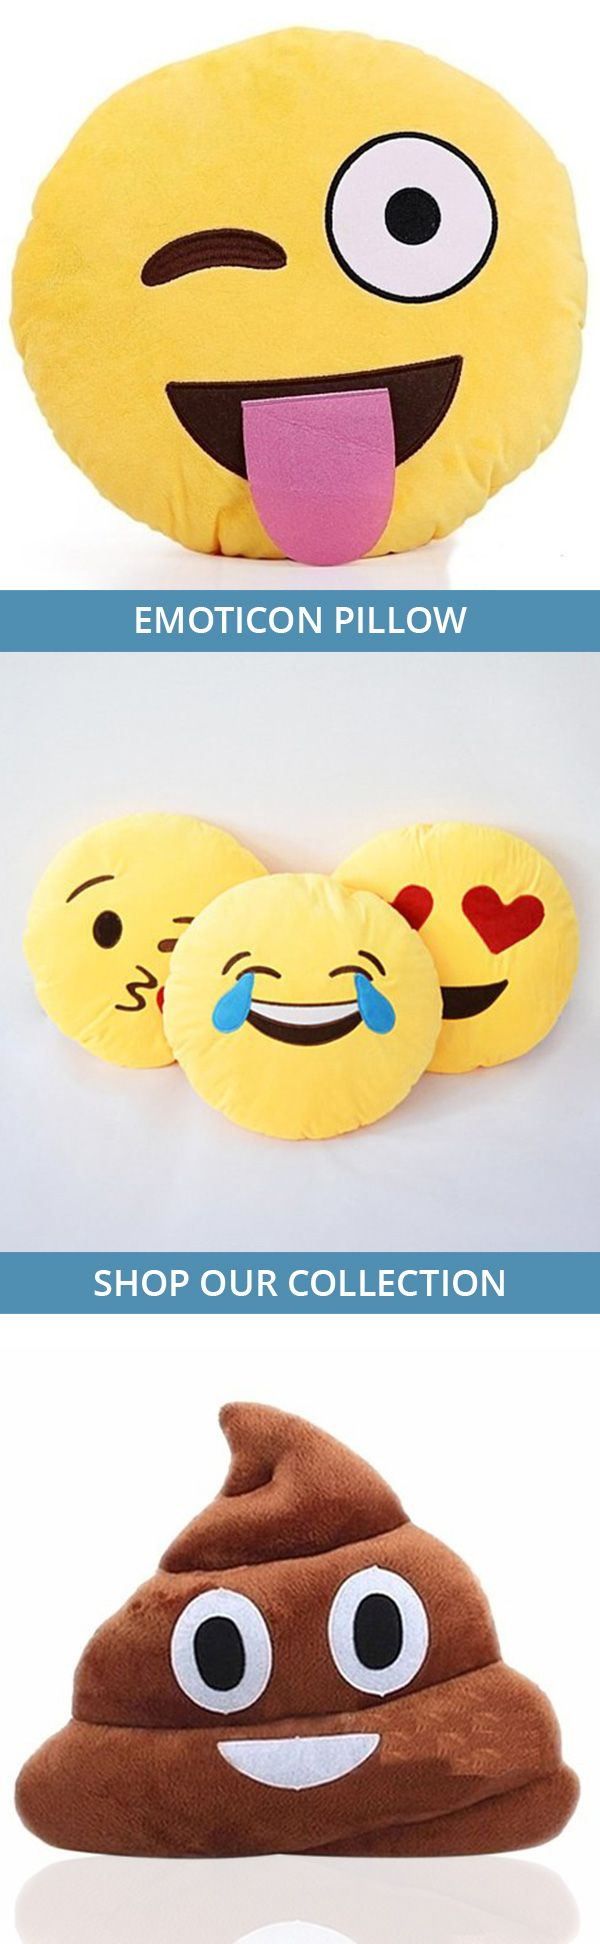 These little symbols have changed the way we text, email, and tweet. They certainly are more popular than ever with the ability to explain in one quick click exactly how you are feeling. These pillows come in your choice of Smiling Face with Open Mouth and Eyes, Throwing a Kiss, Laughing Tears, Heart Eyes, Stuck Out Tongue and Winking Eye, and Smiling Face with Sunglasses. Also, when none of these expressions will do, we have the Poop Pillow too.